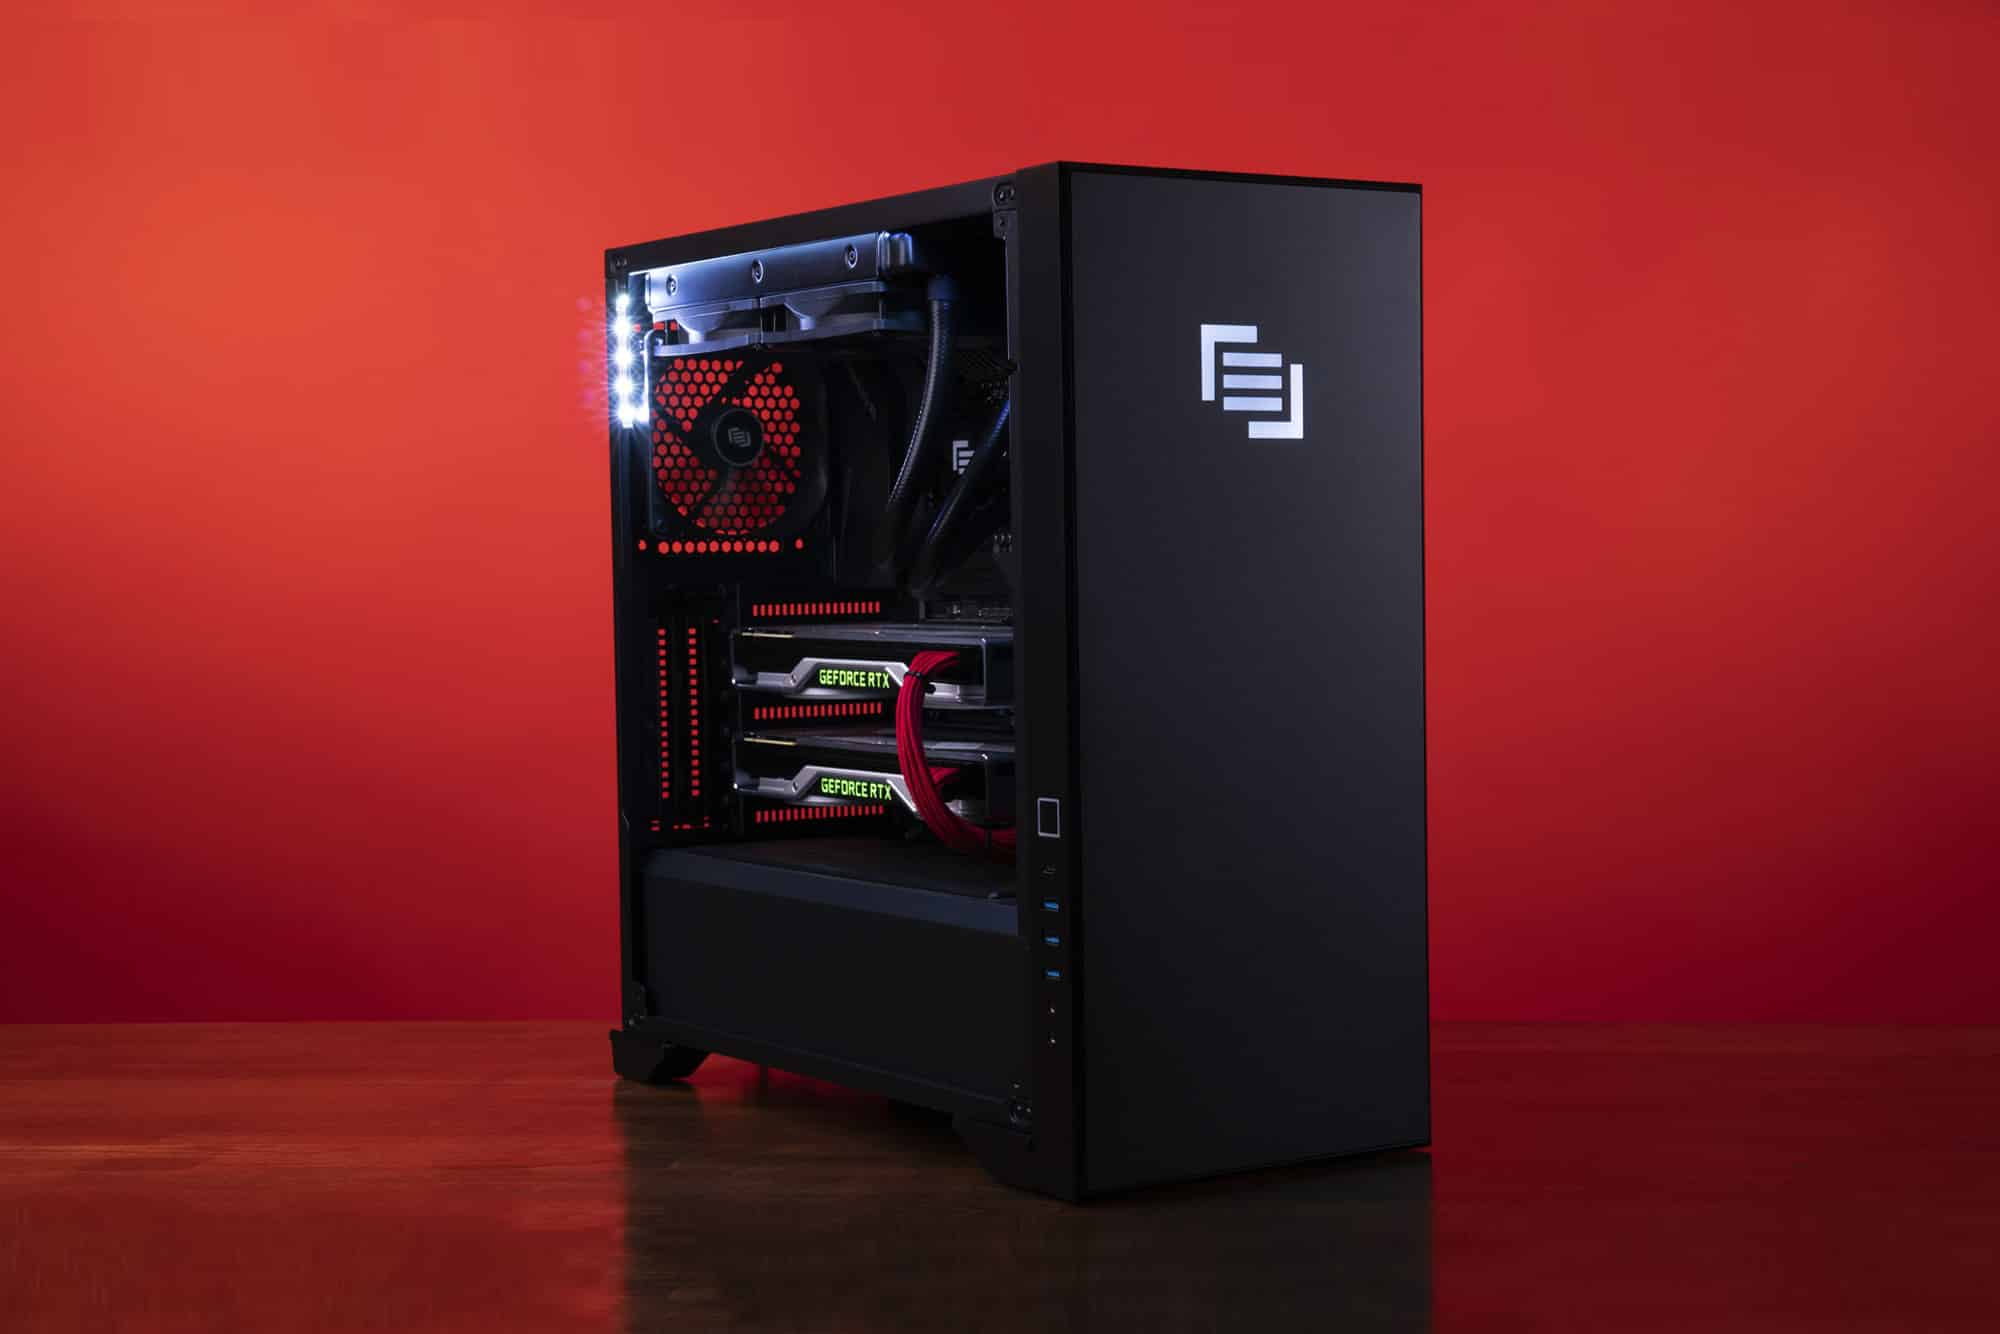 Maingear Vybe Custom PC with dual graphics cards on a wood table with a red background.